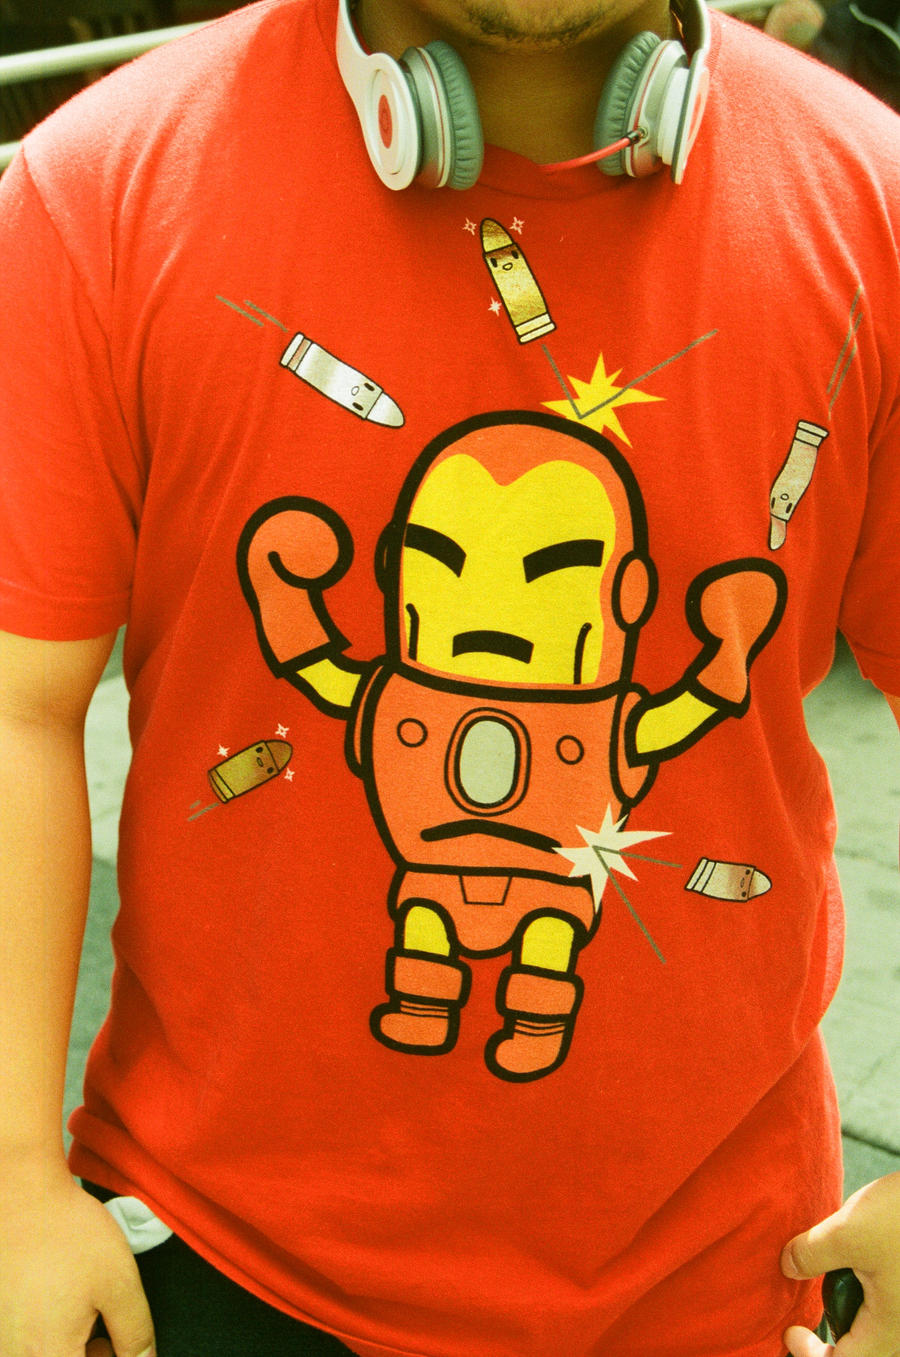 Mini iron man ii by neville6000 on deviantart - Mini iron man ...